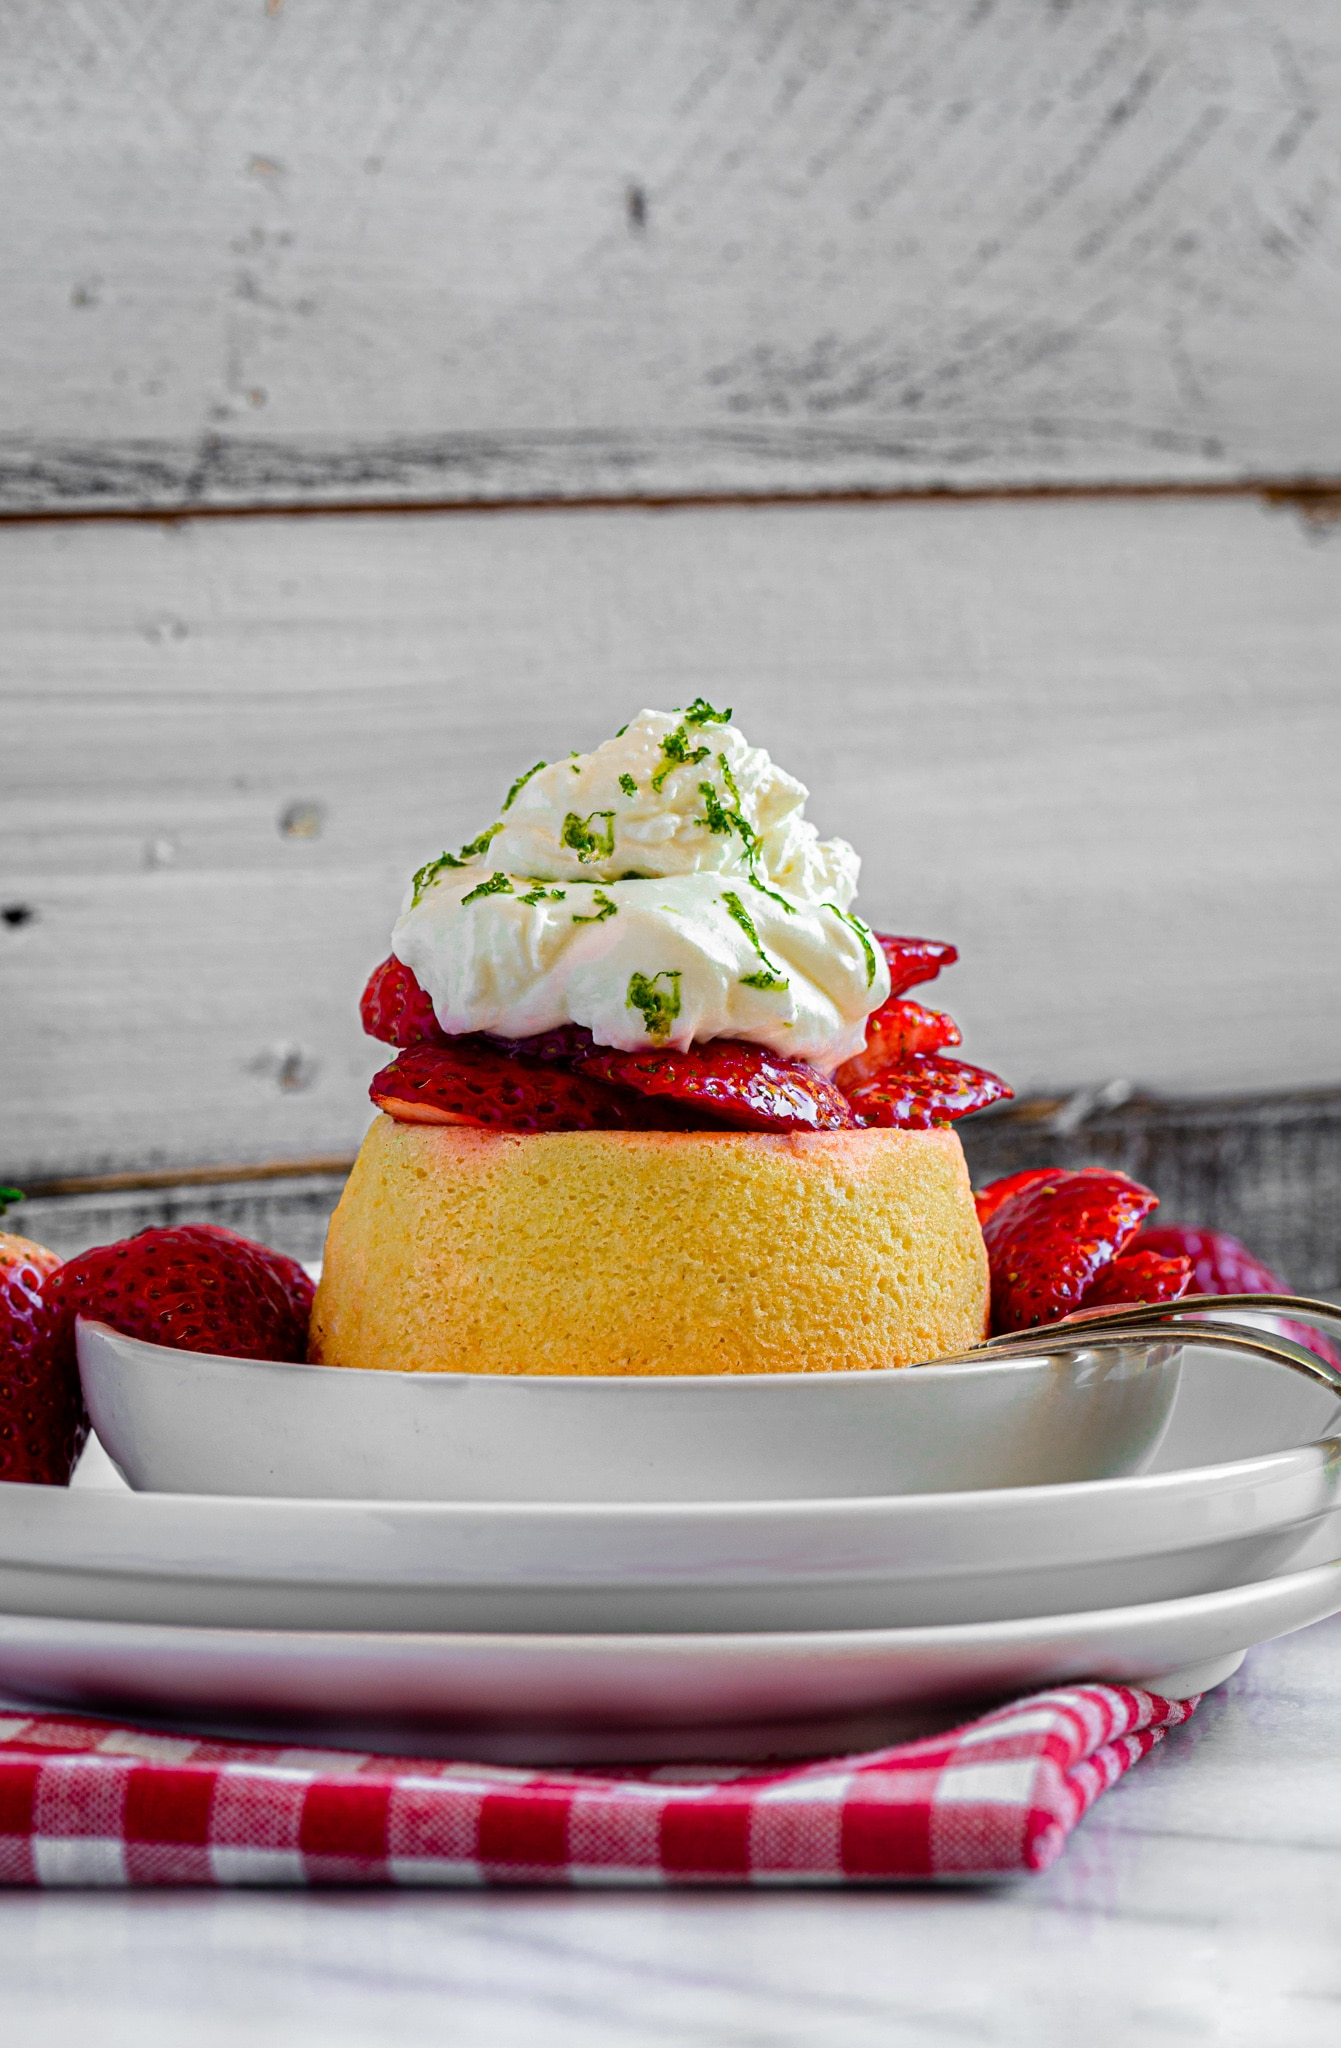 Strawberry shortcake dessert on a small plate with fork and napkin.